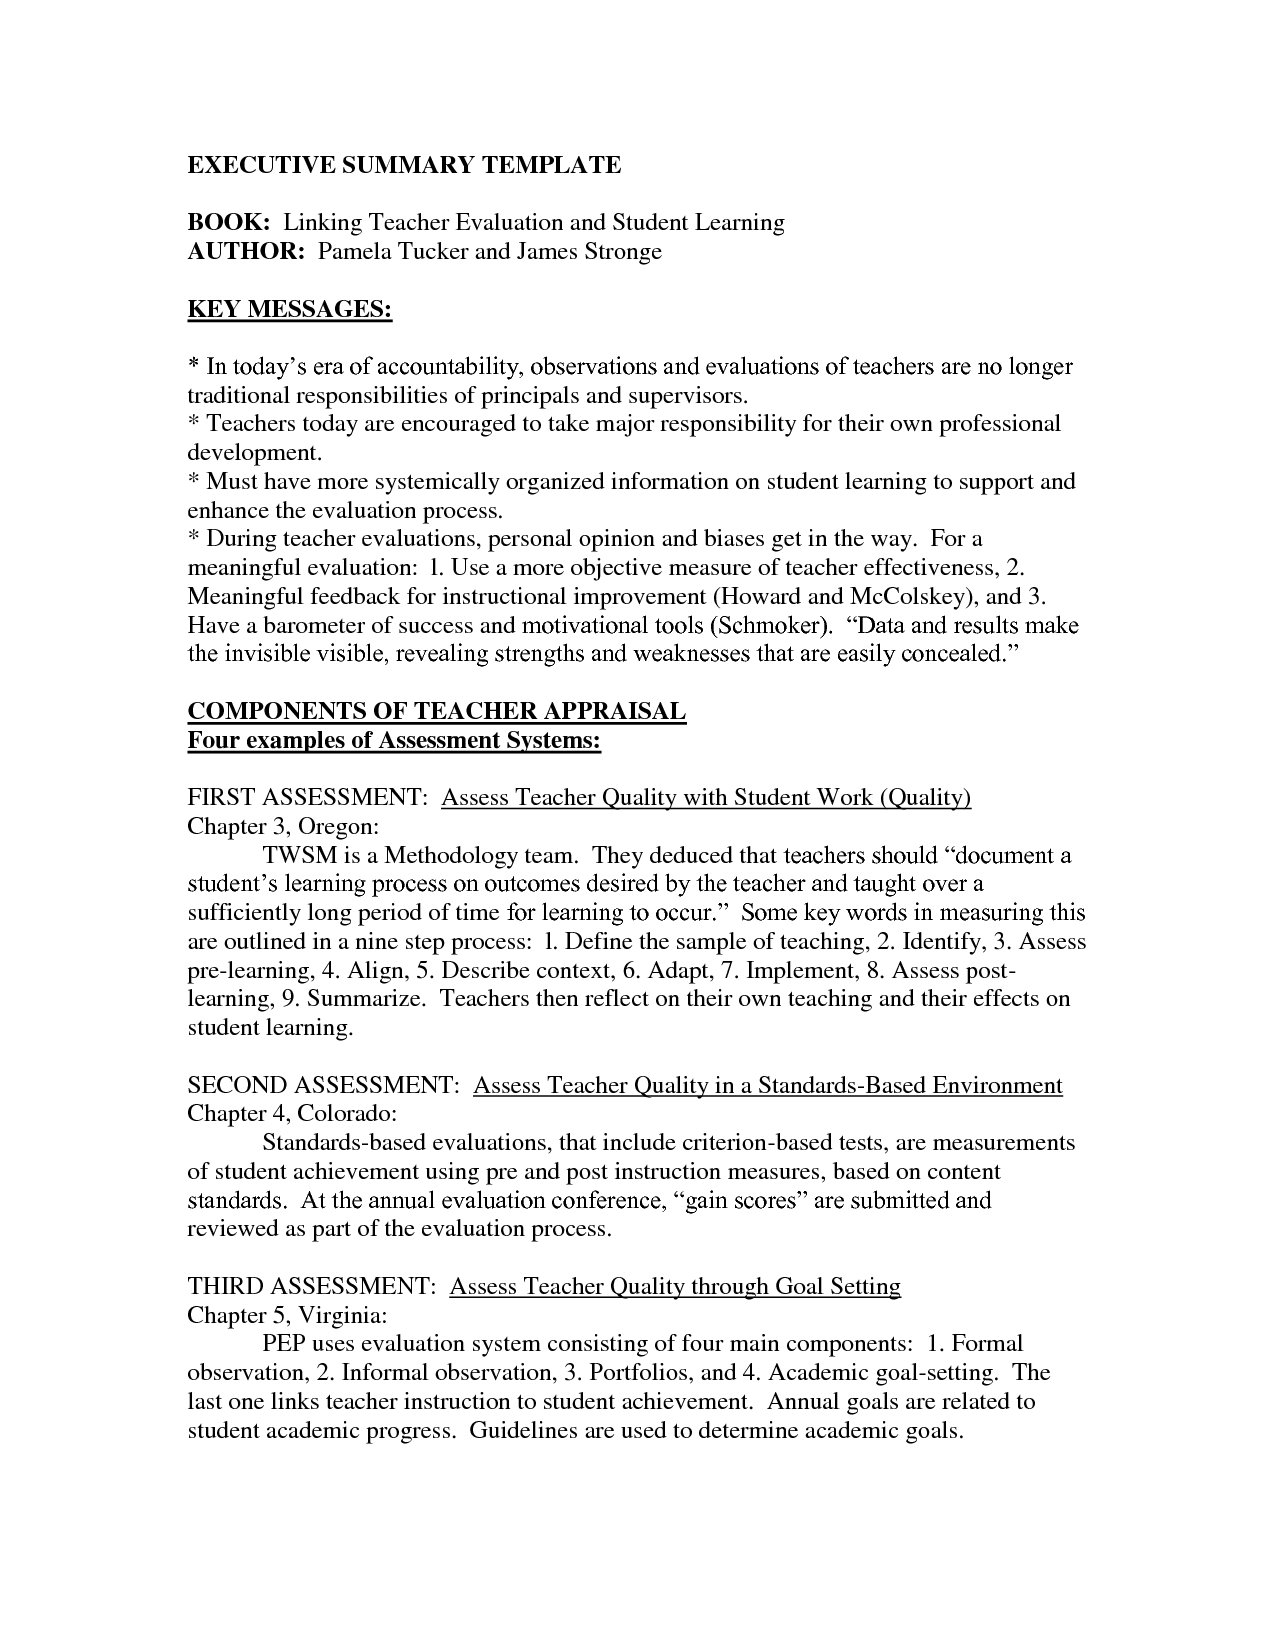 Word Executive Summary Template Resume Example Samples Pdf  Resume Executive Summary Examples